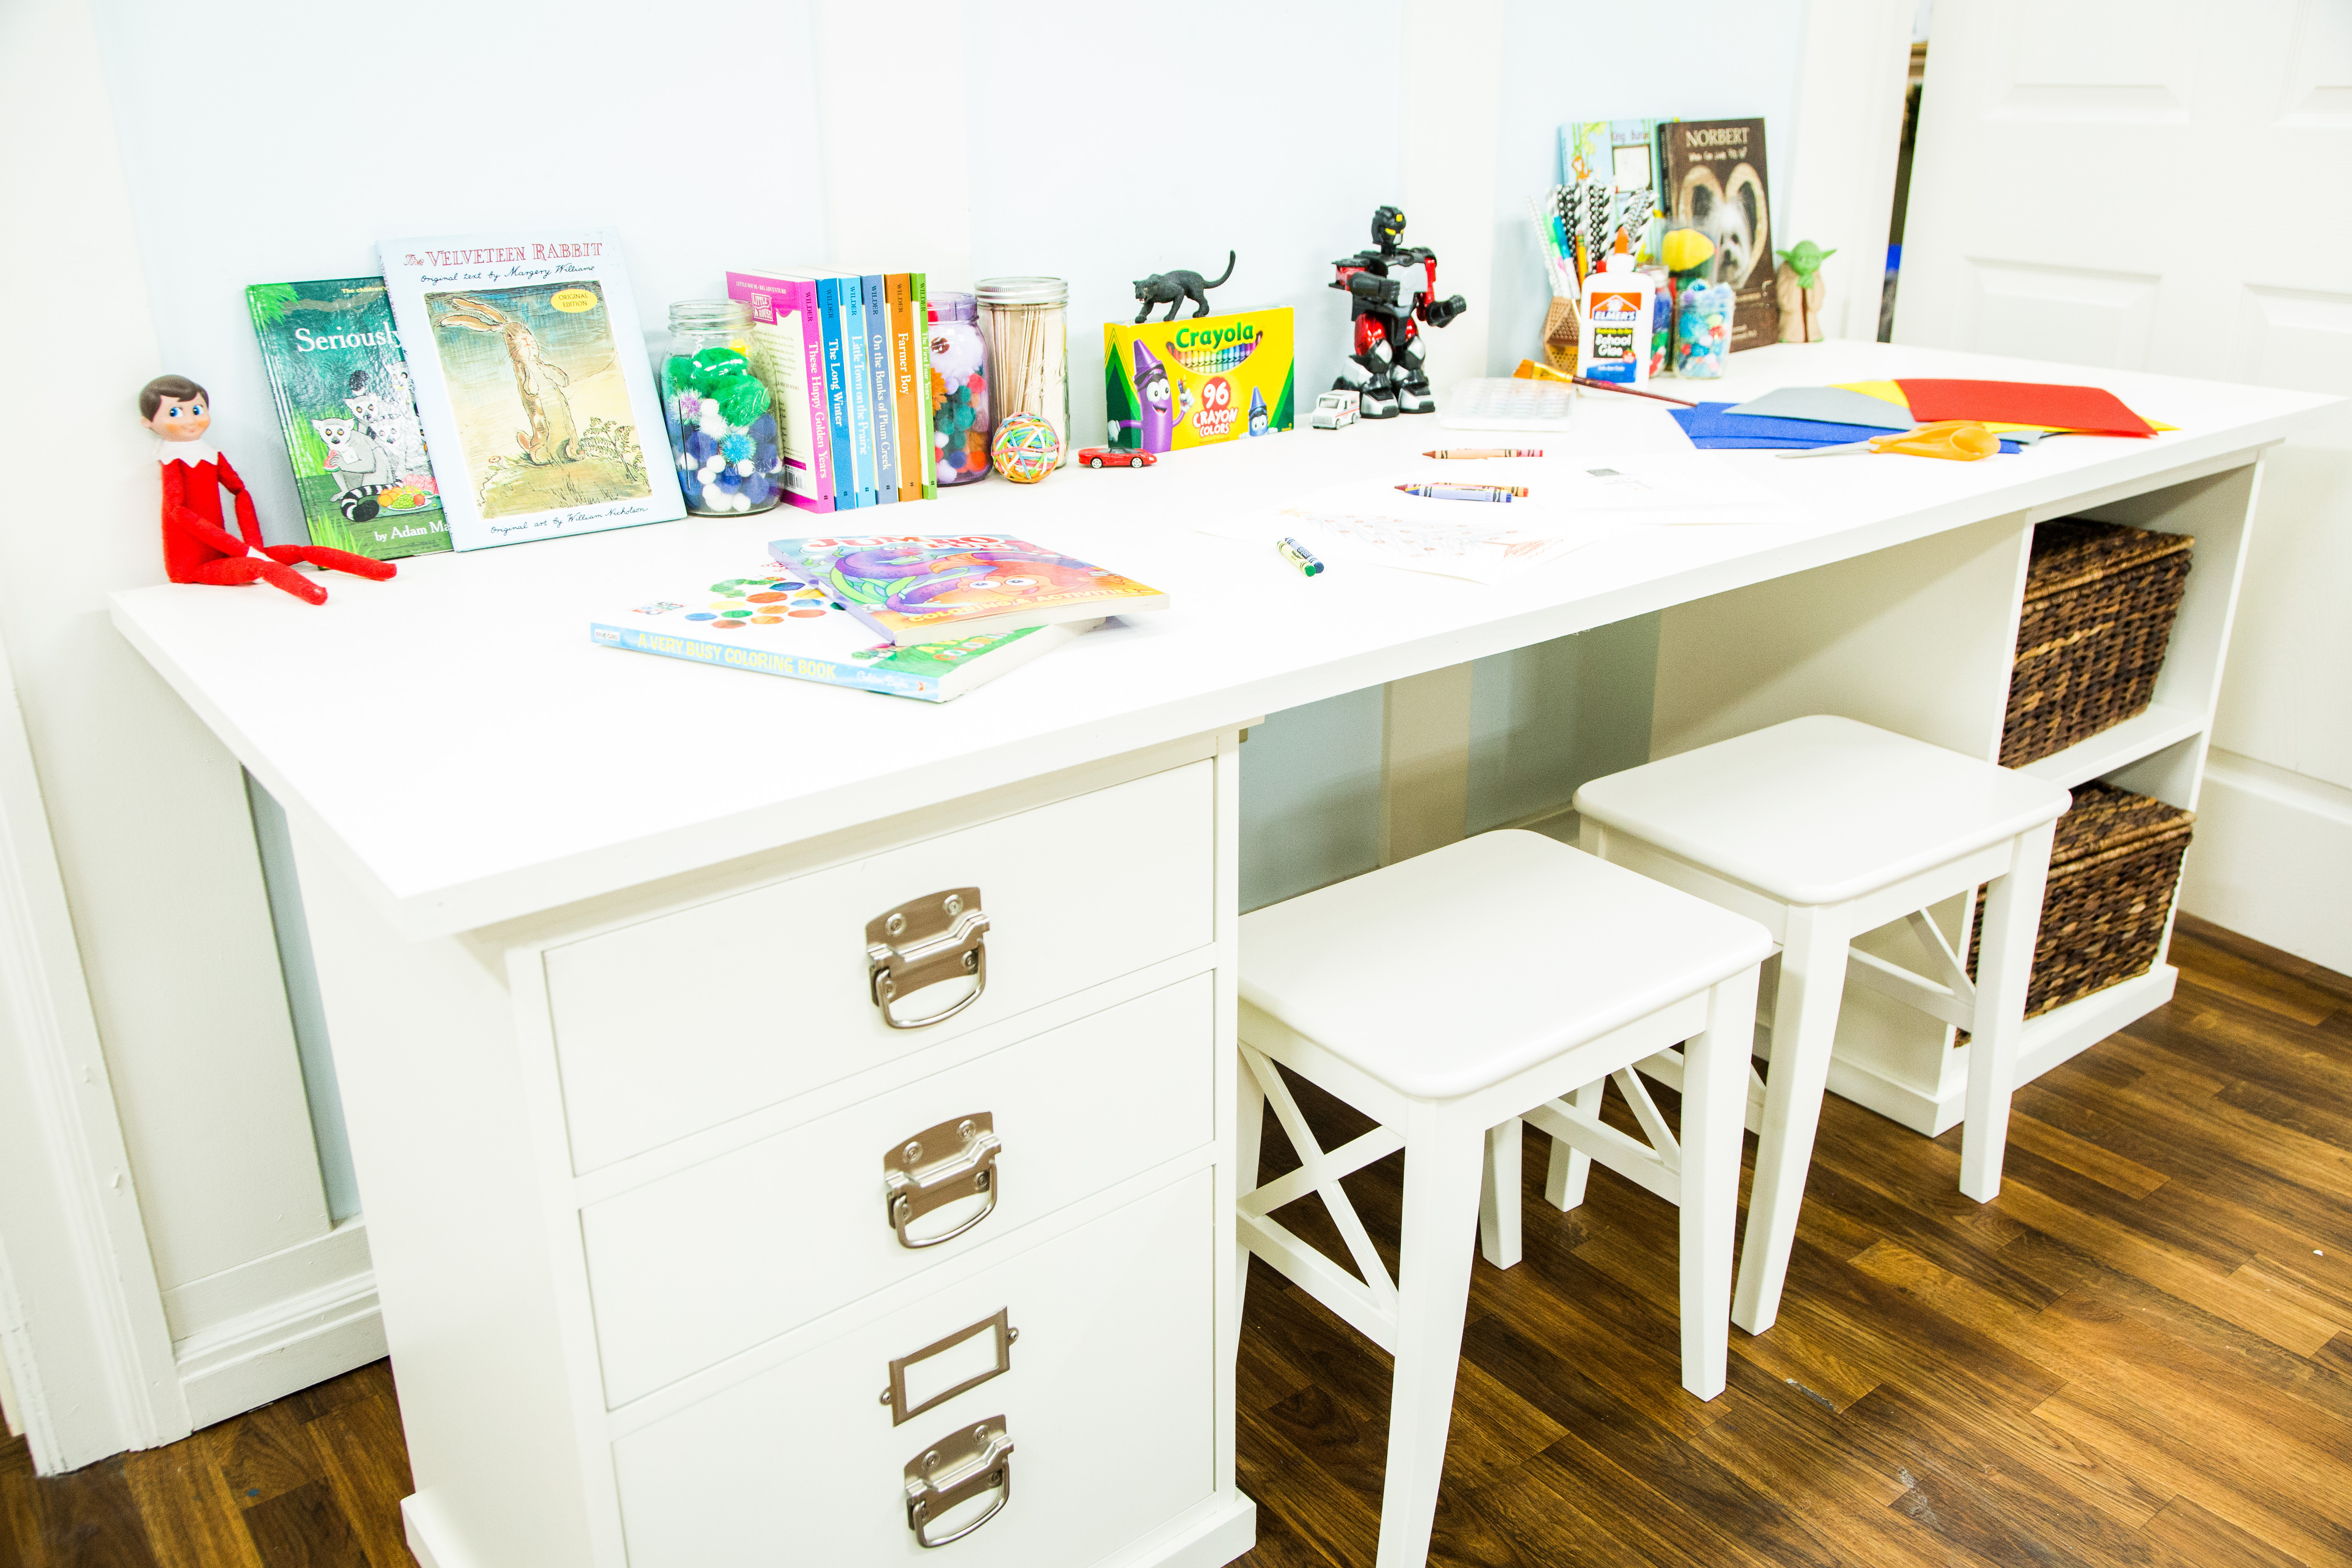 Best ideas about DIY Kids Craft Table . Save or Pin DIY Kids Craft Table Home & Family Now.